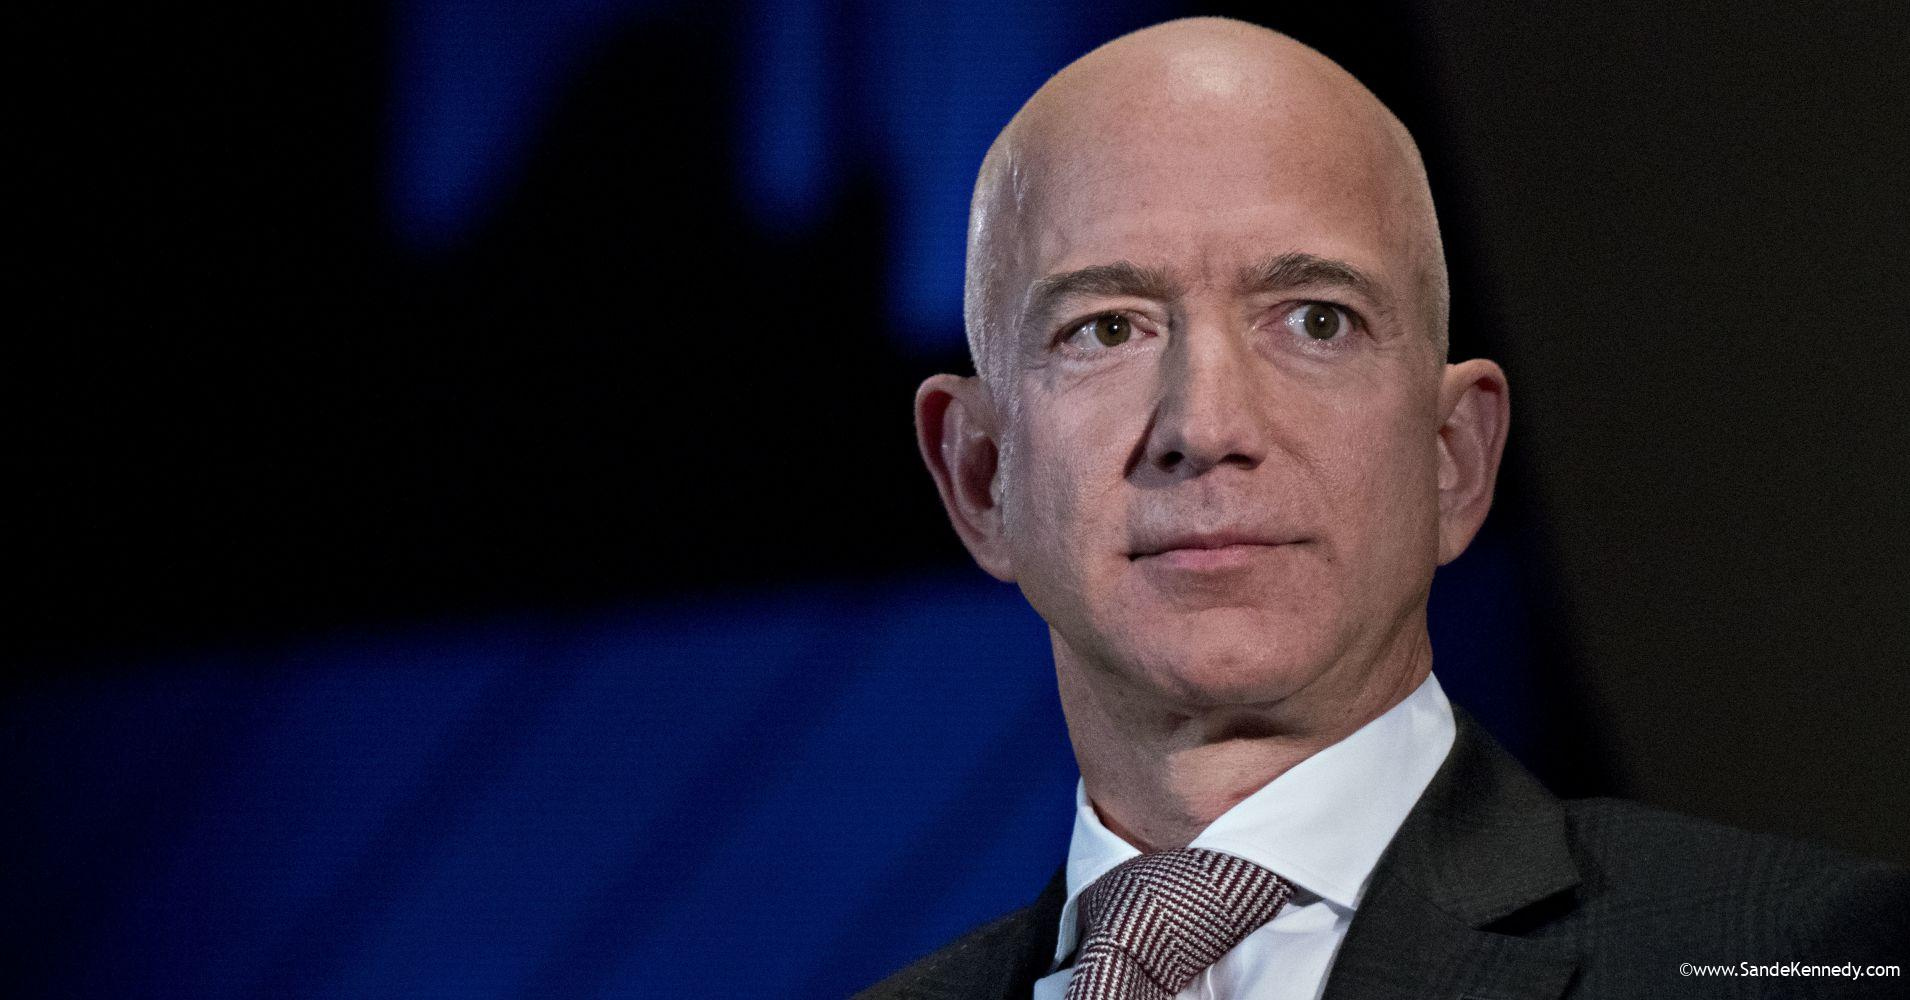 Confirmed Amazon founder Jeff Bezos has lost his place as the world's richest man.